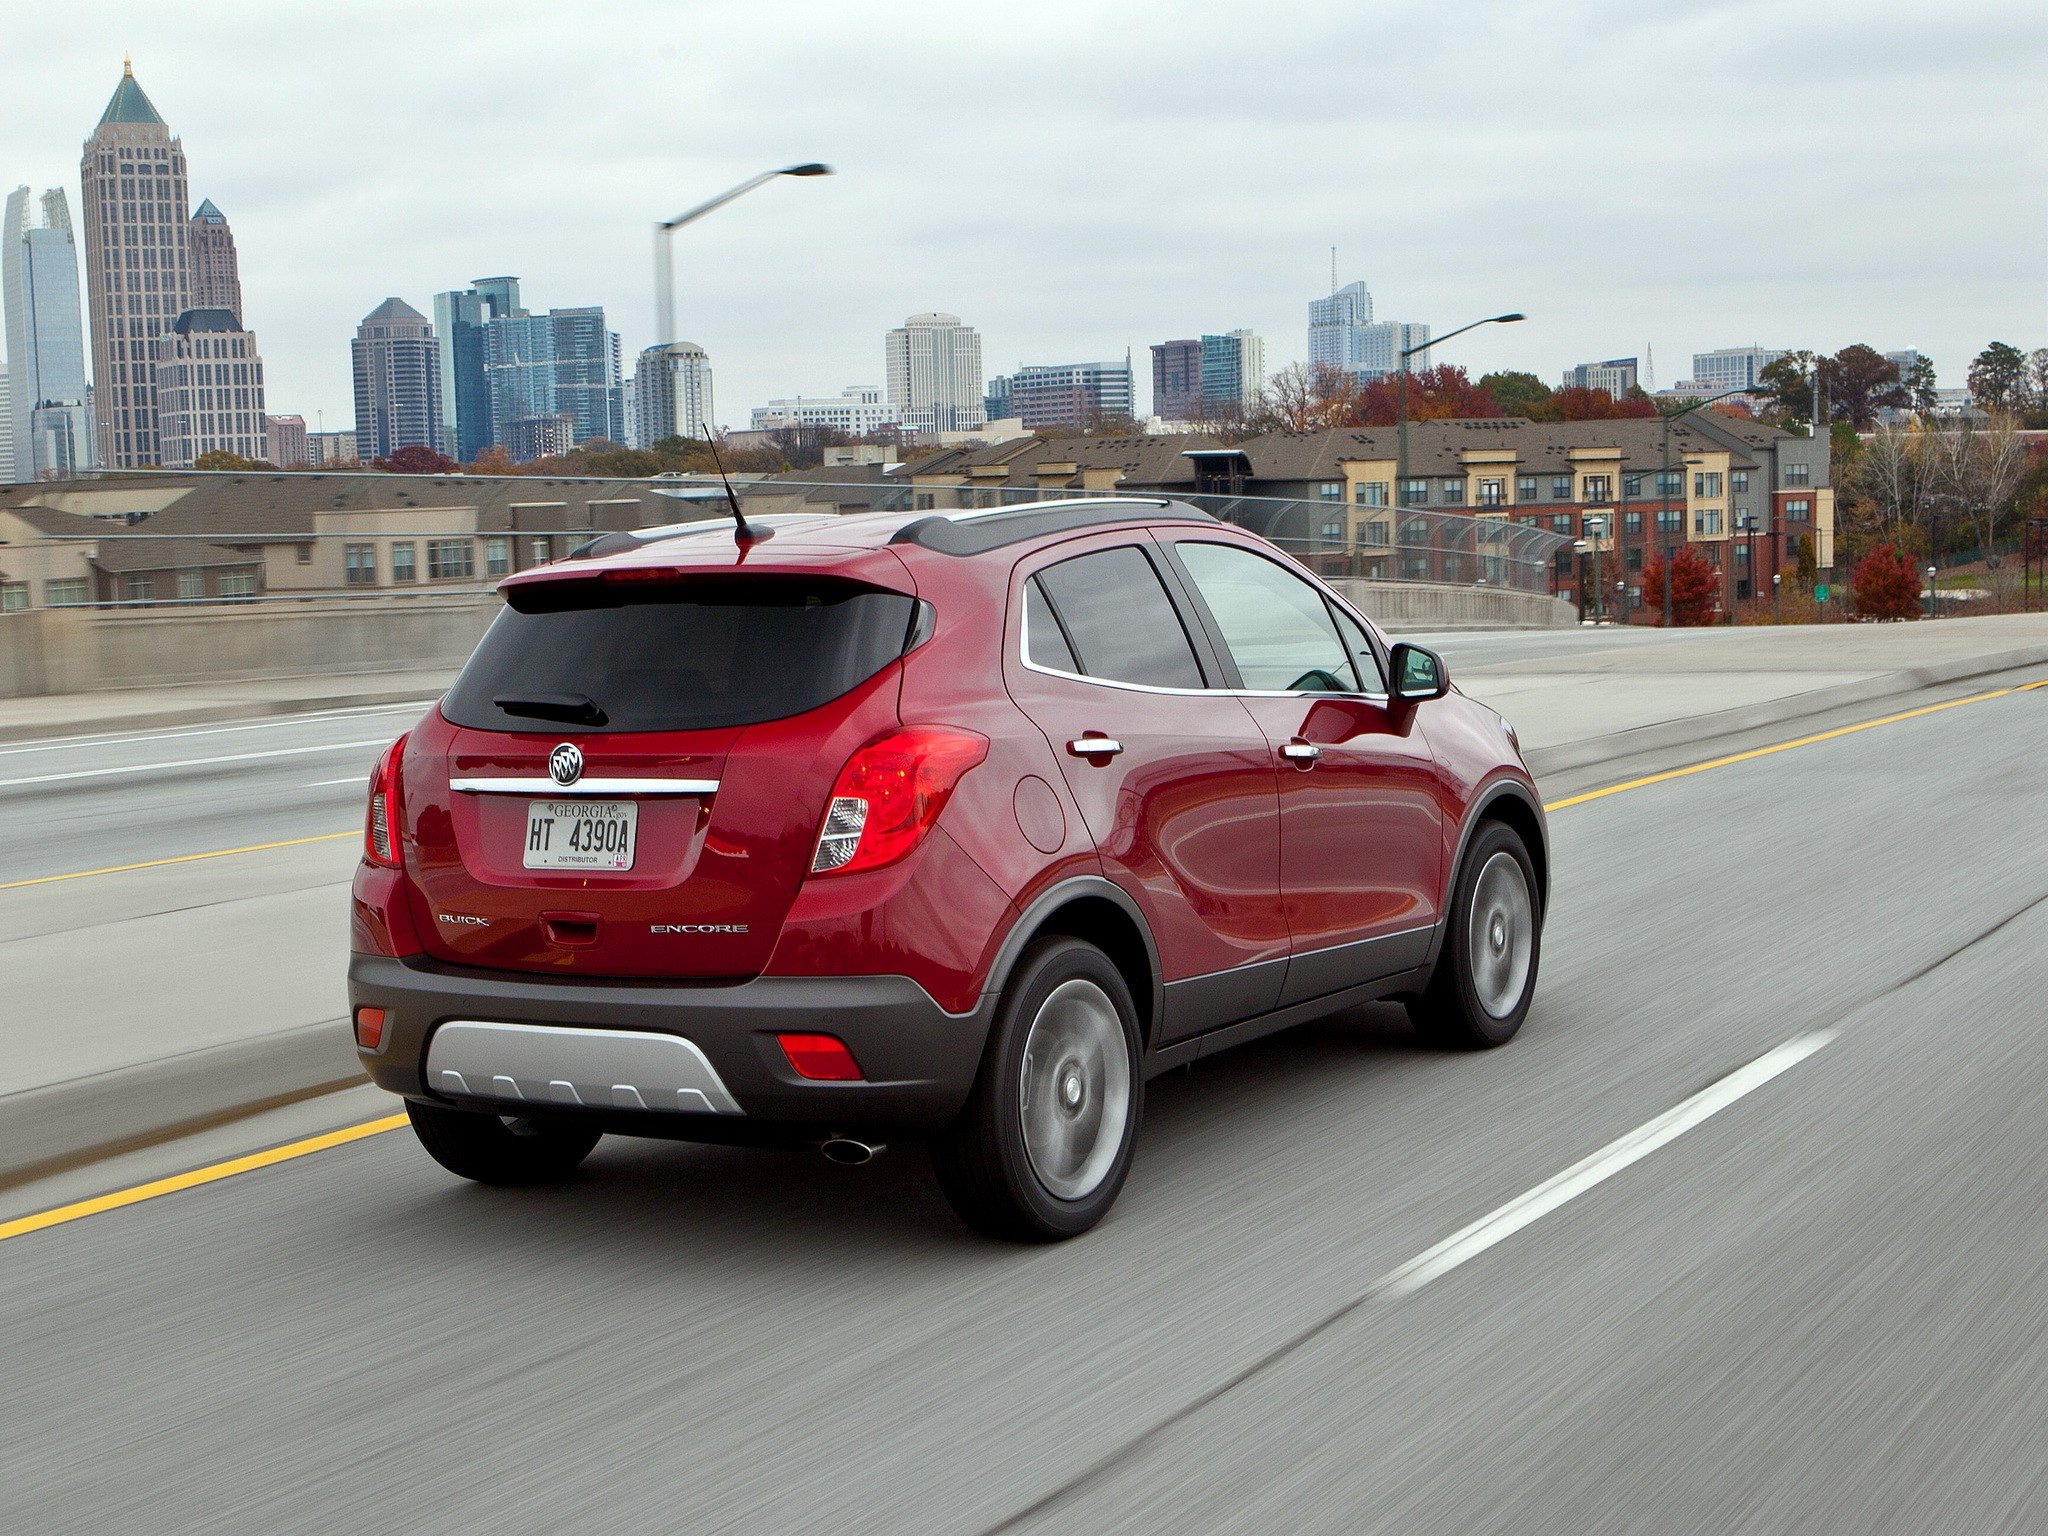 Red Buick Encore 2013 Images & Pictures - Becuo